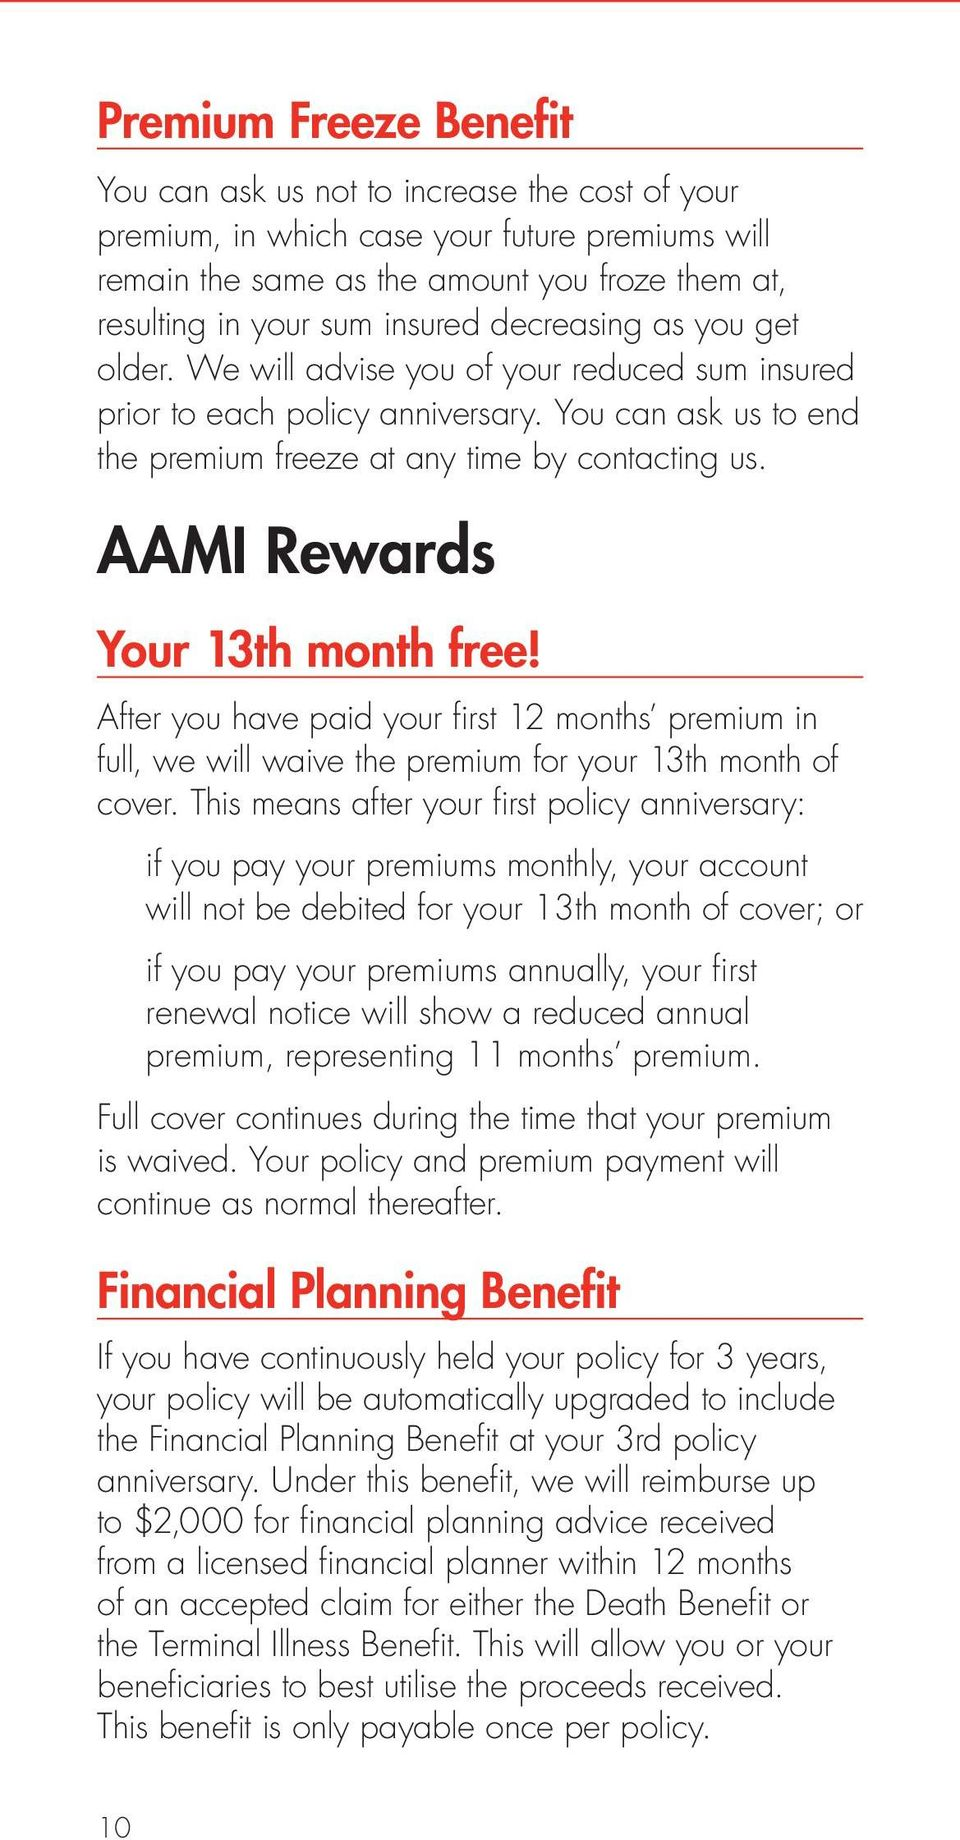 AAMI Rewards Your 13th month free! After you have paid your first 12 months premium in full, we will waive the premium for your 13th month of cover.